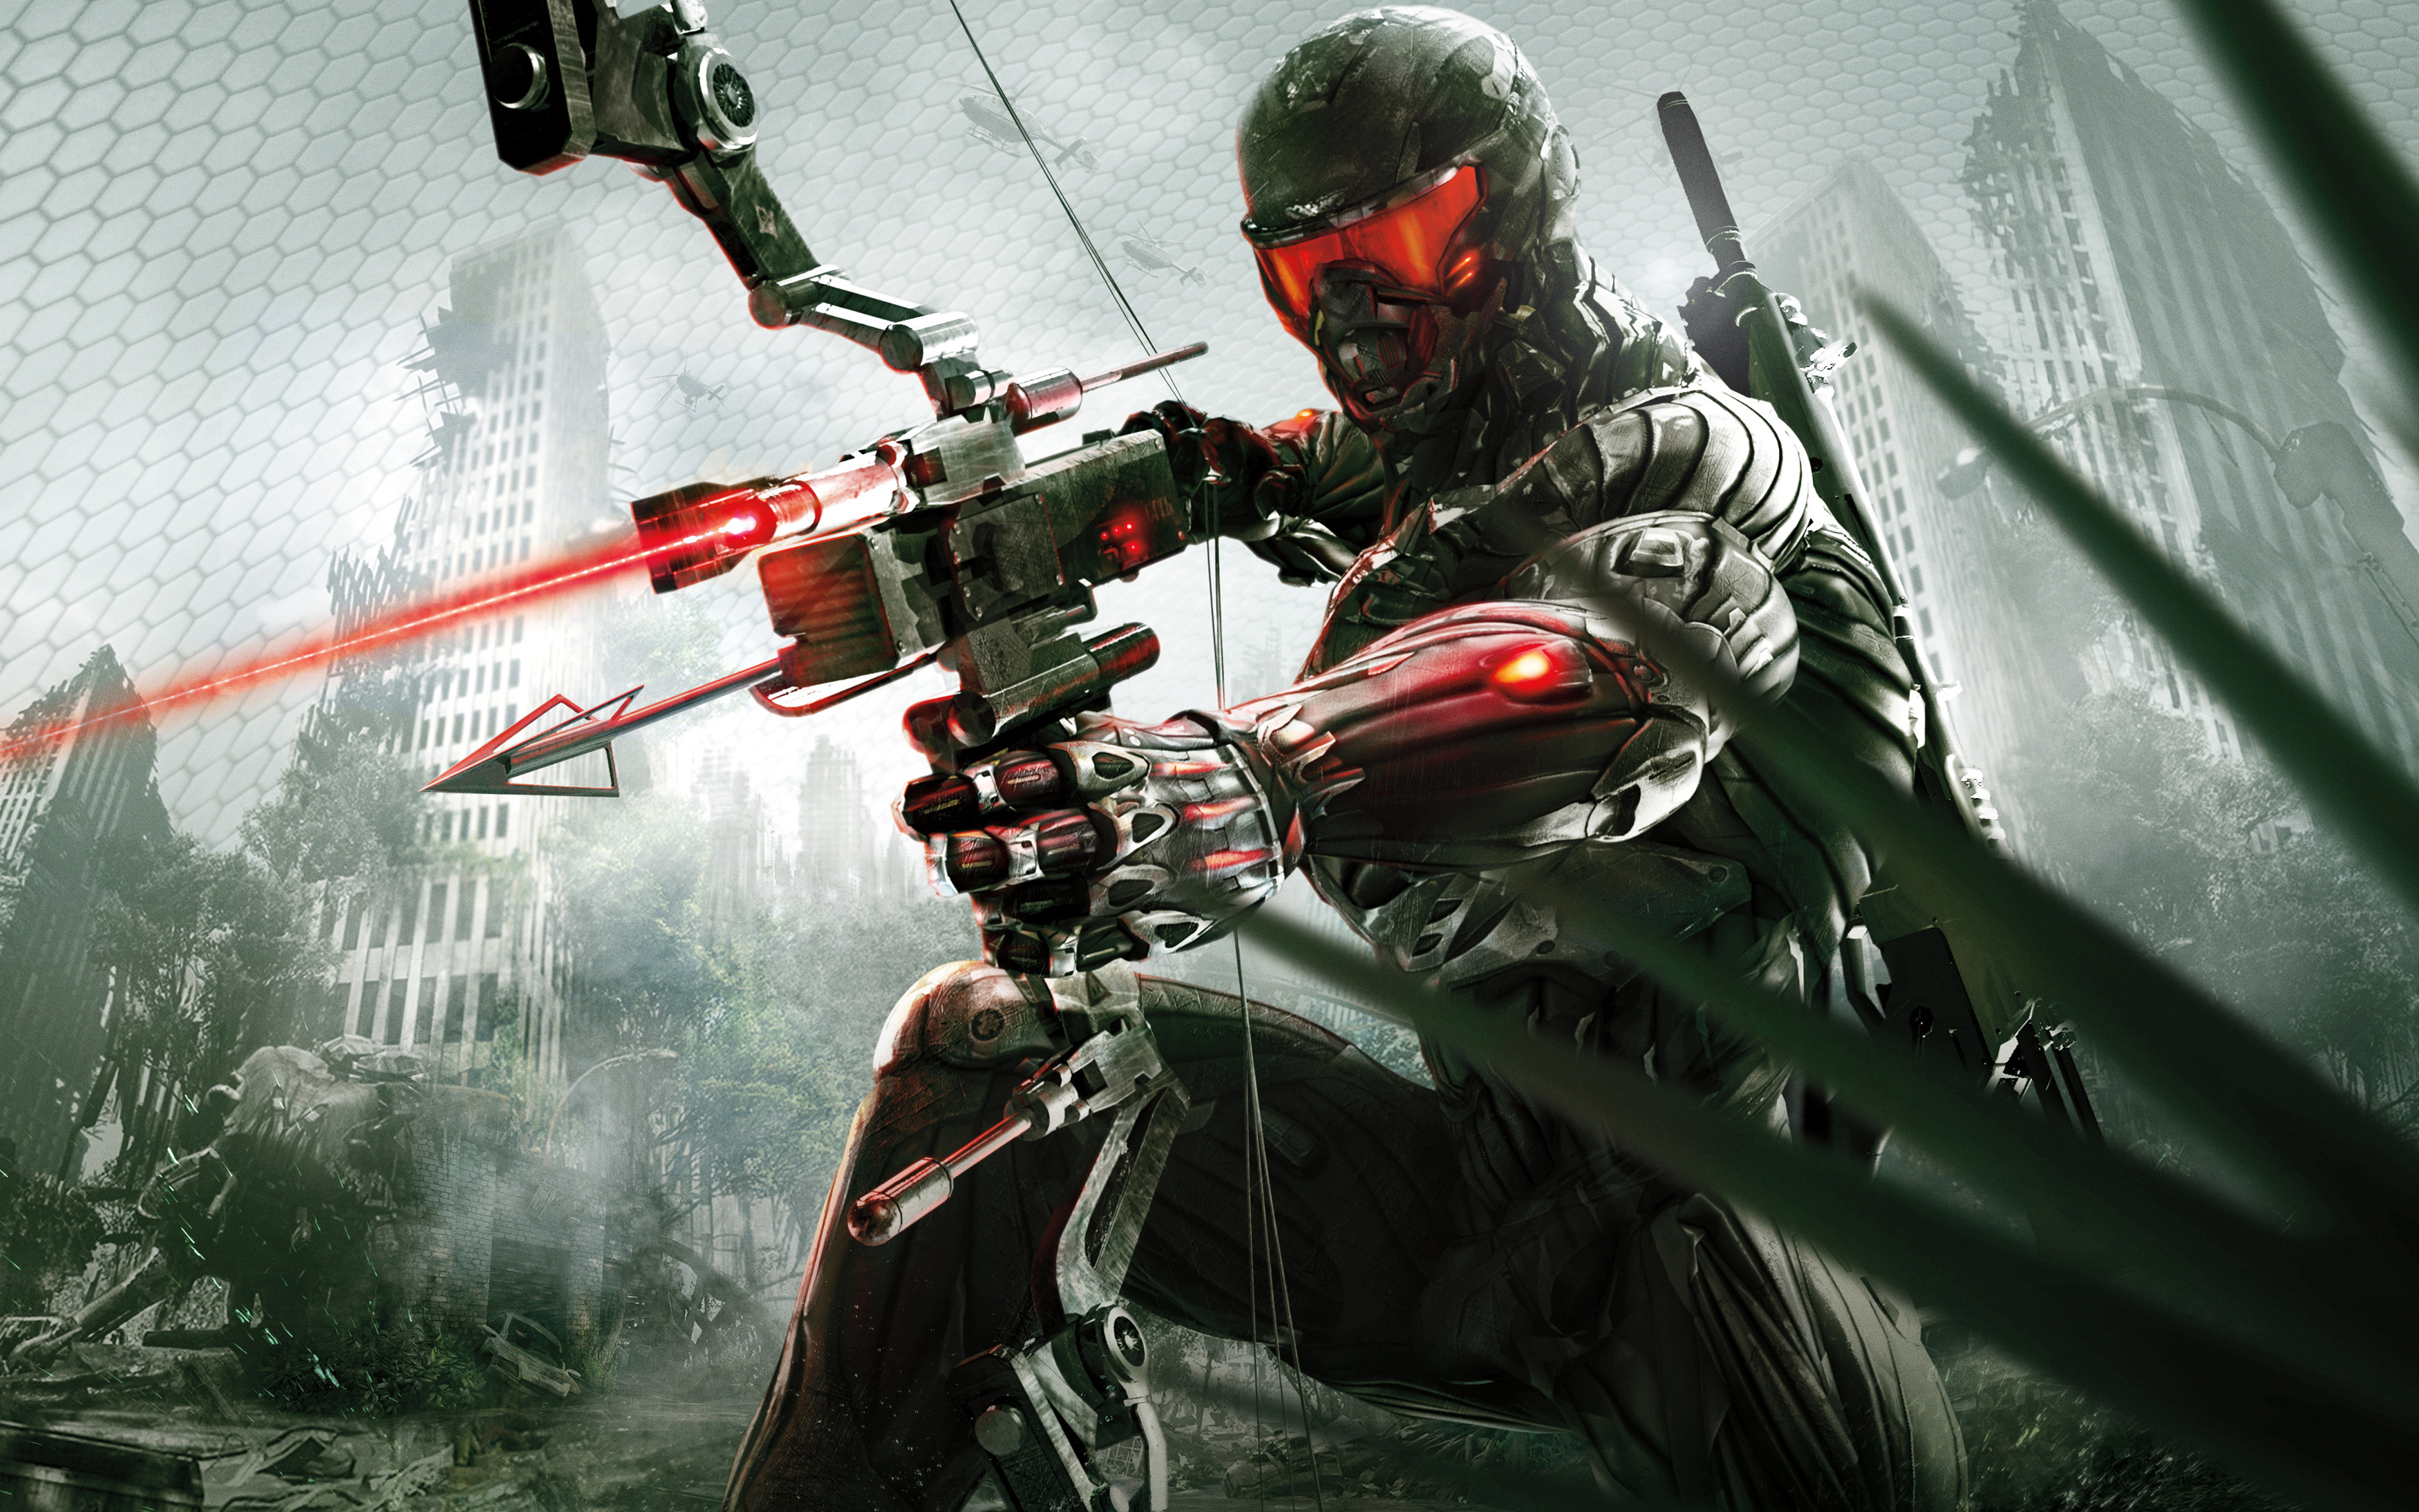 Crysis 3 Wallpaper Iphone